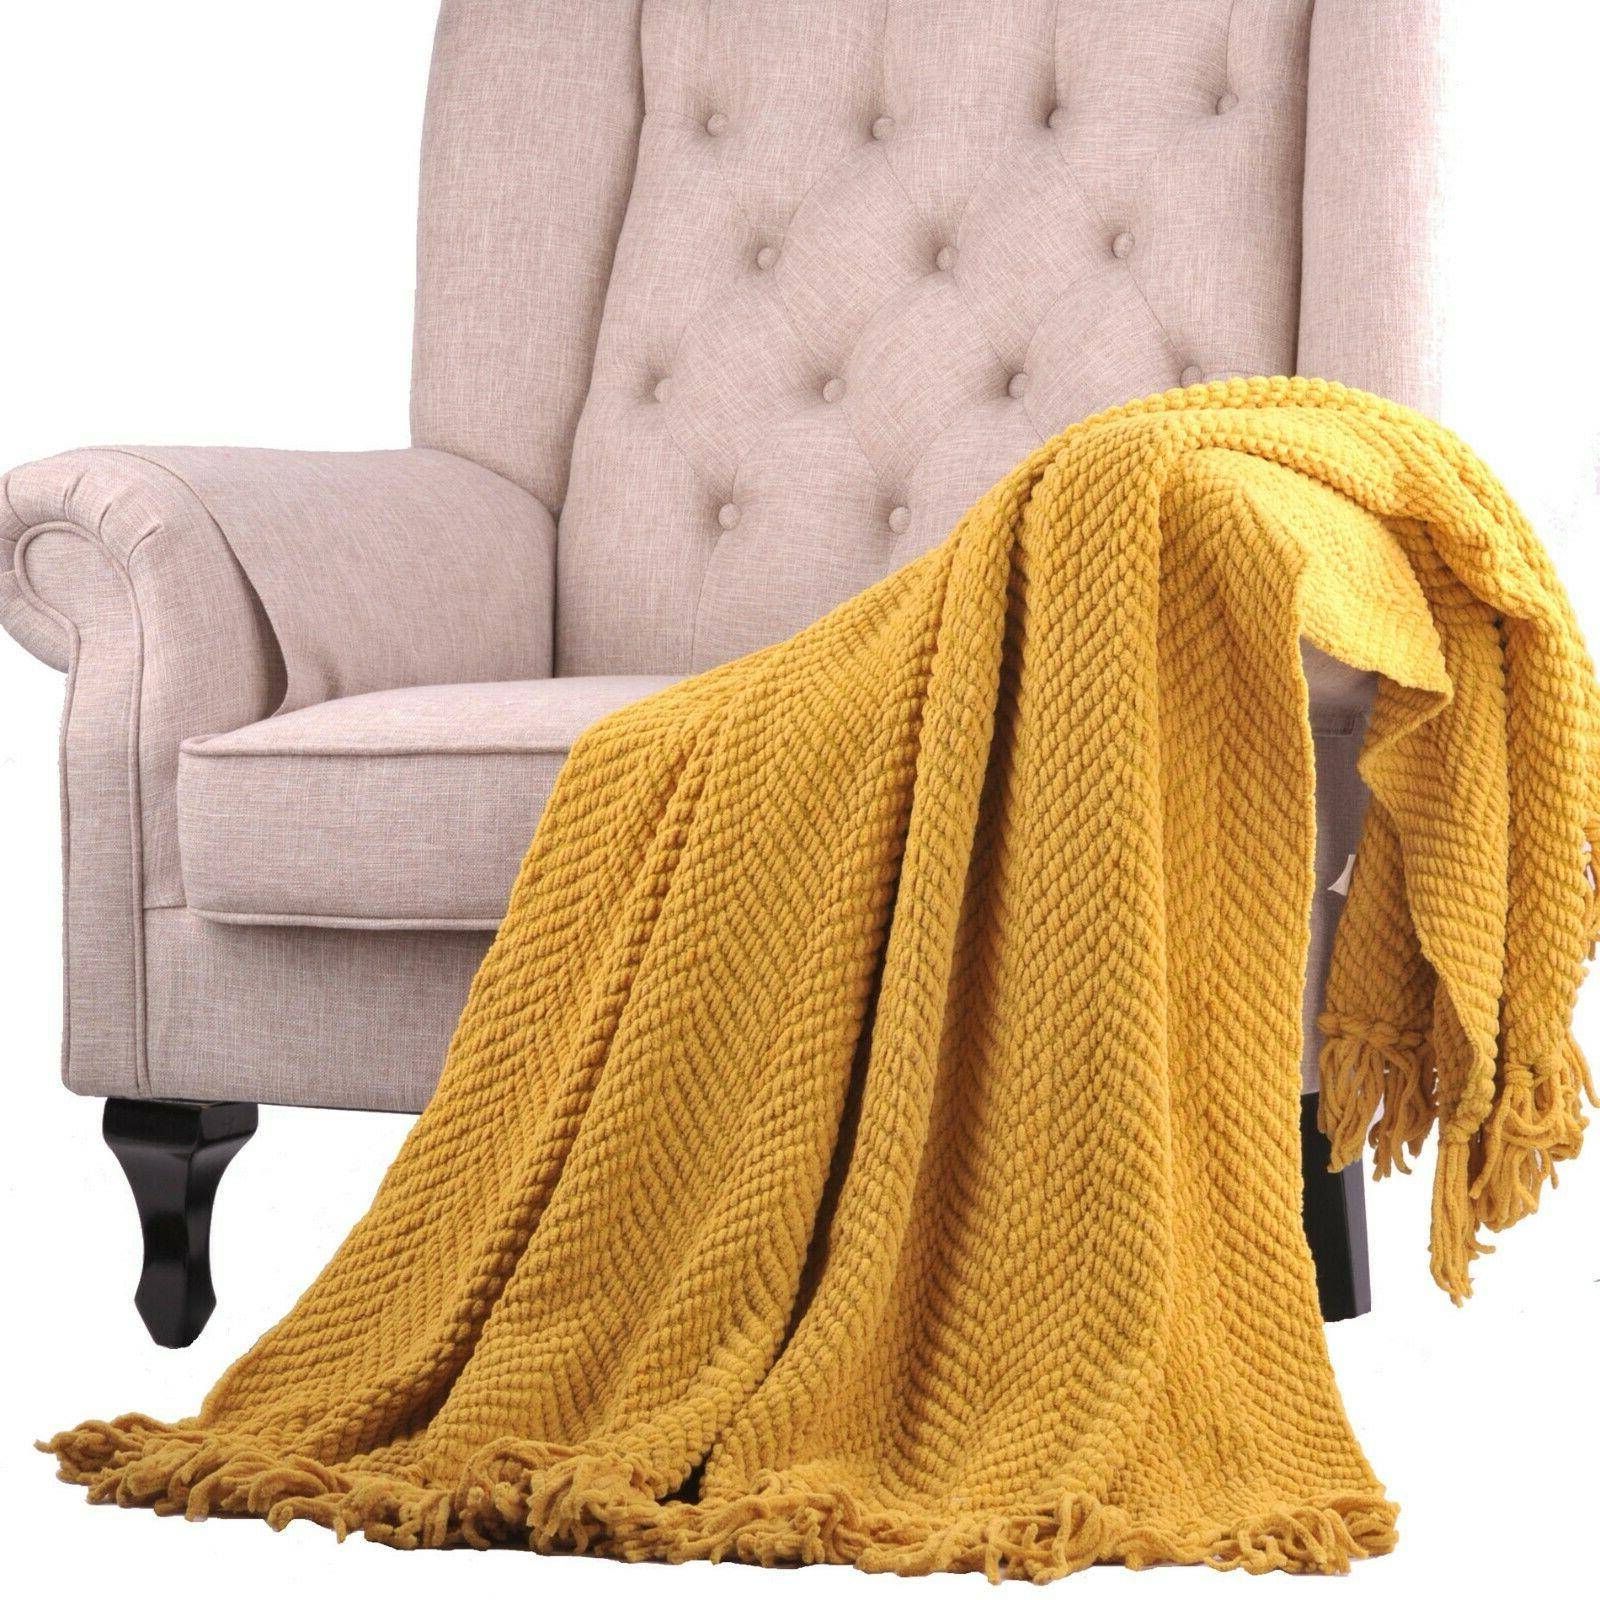 knitted throw throw sofa couch blanket home